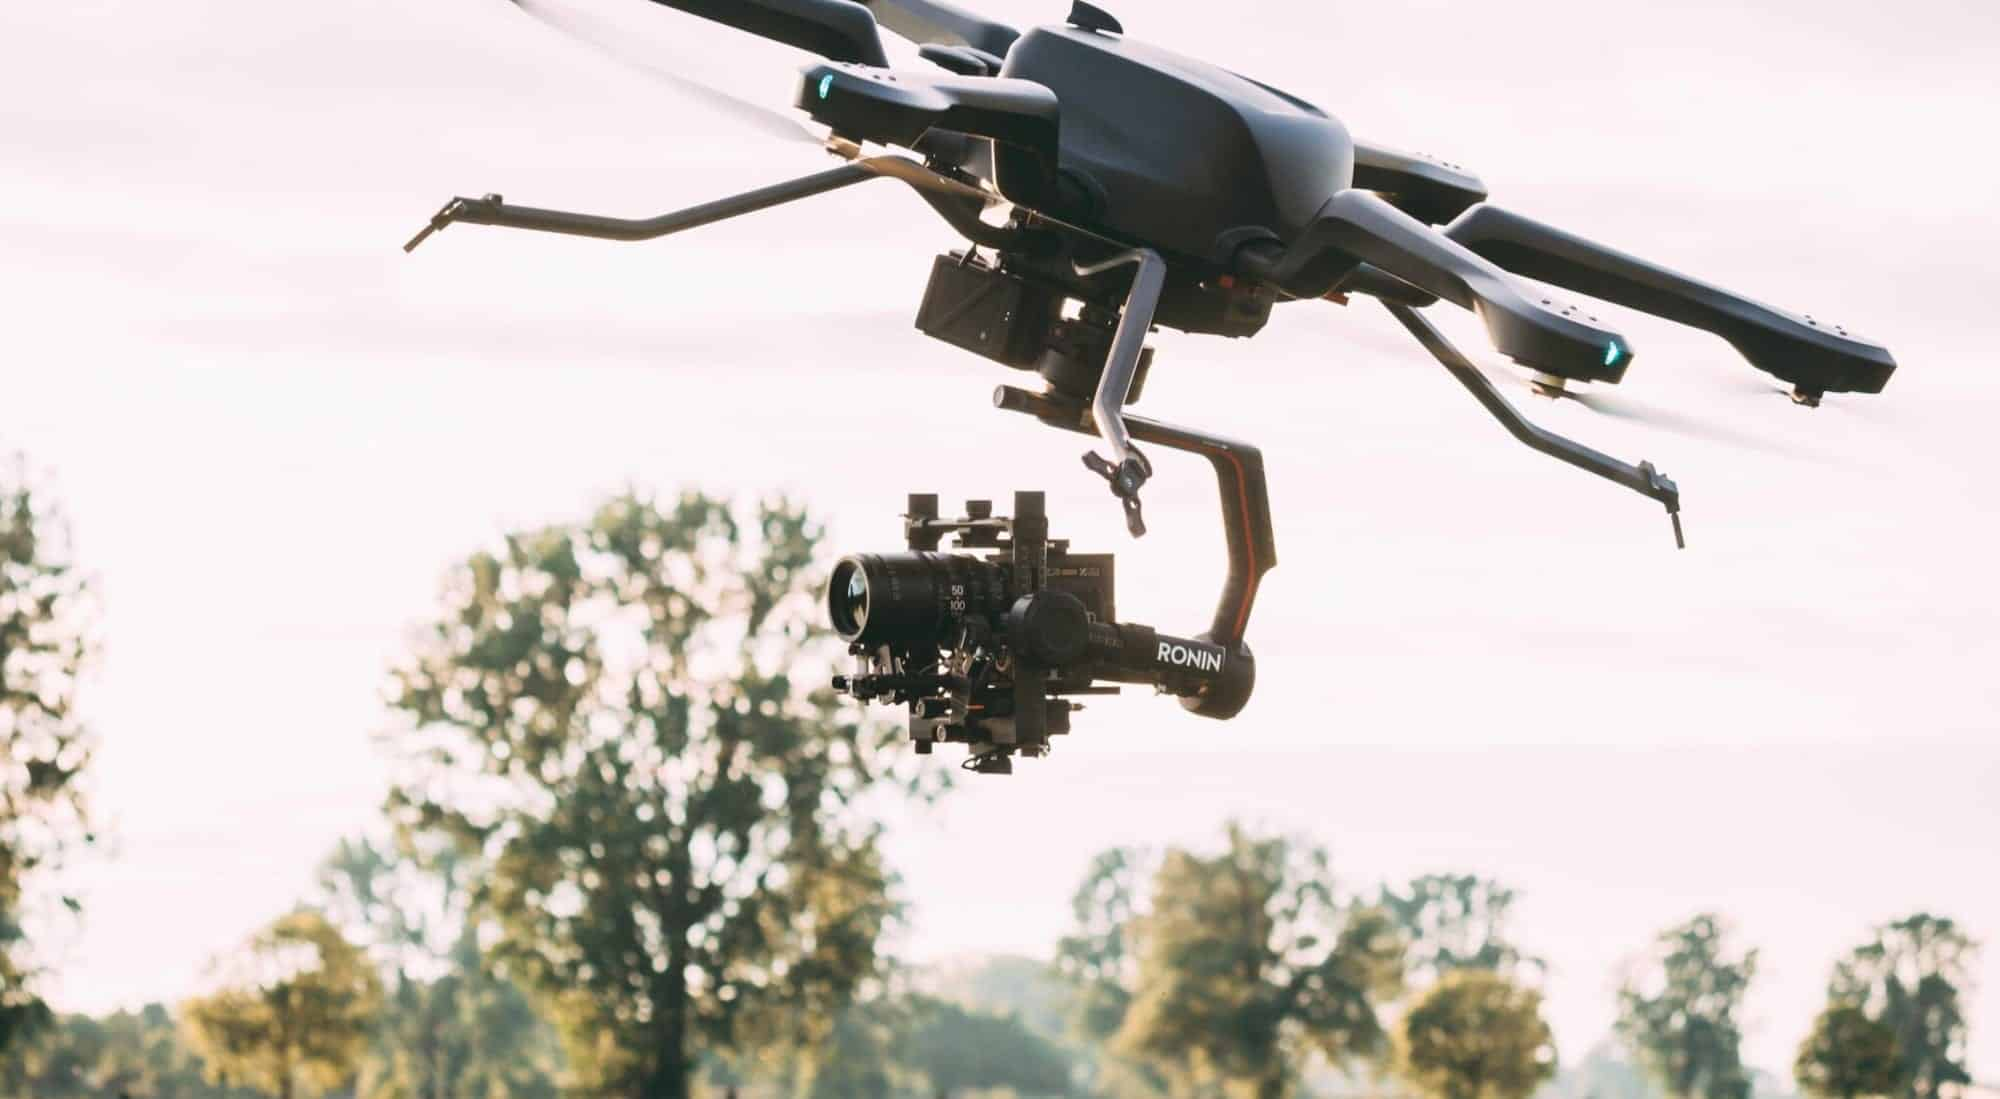 The Acecore Noa drone, a persistent heavy lifting hexacopter